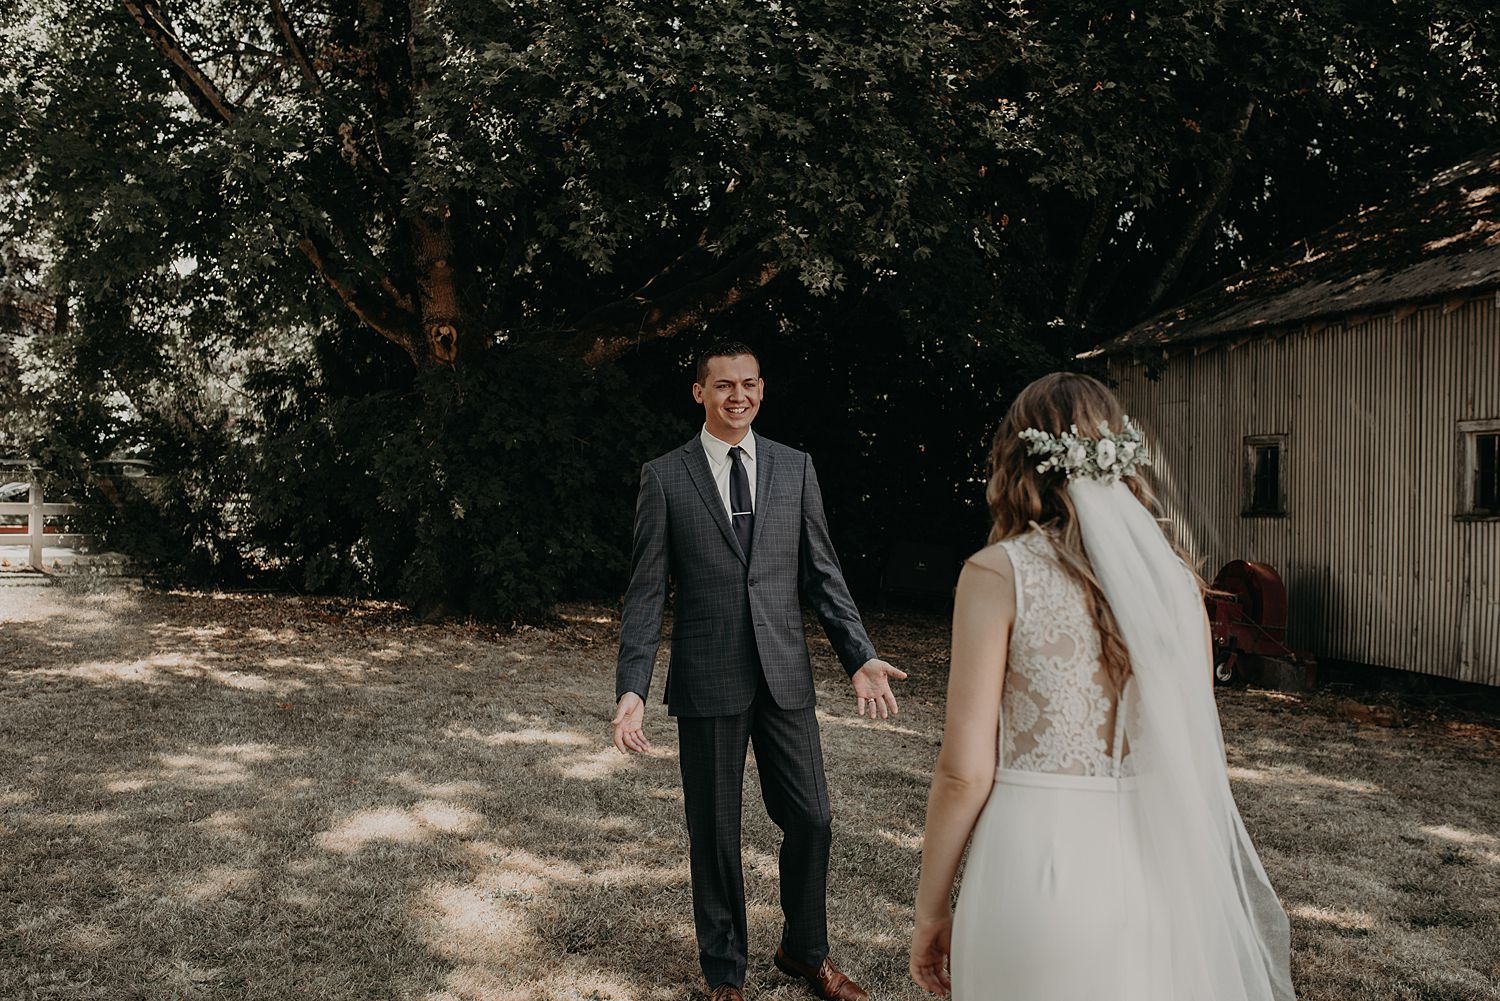 Kayla_Josh_Oregon_Wedding_July29_2018_0181.jpg